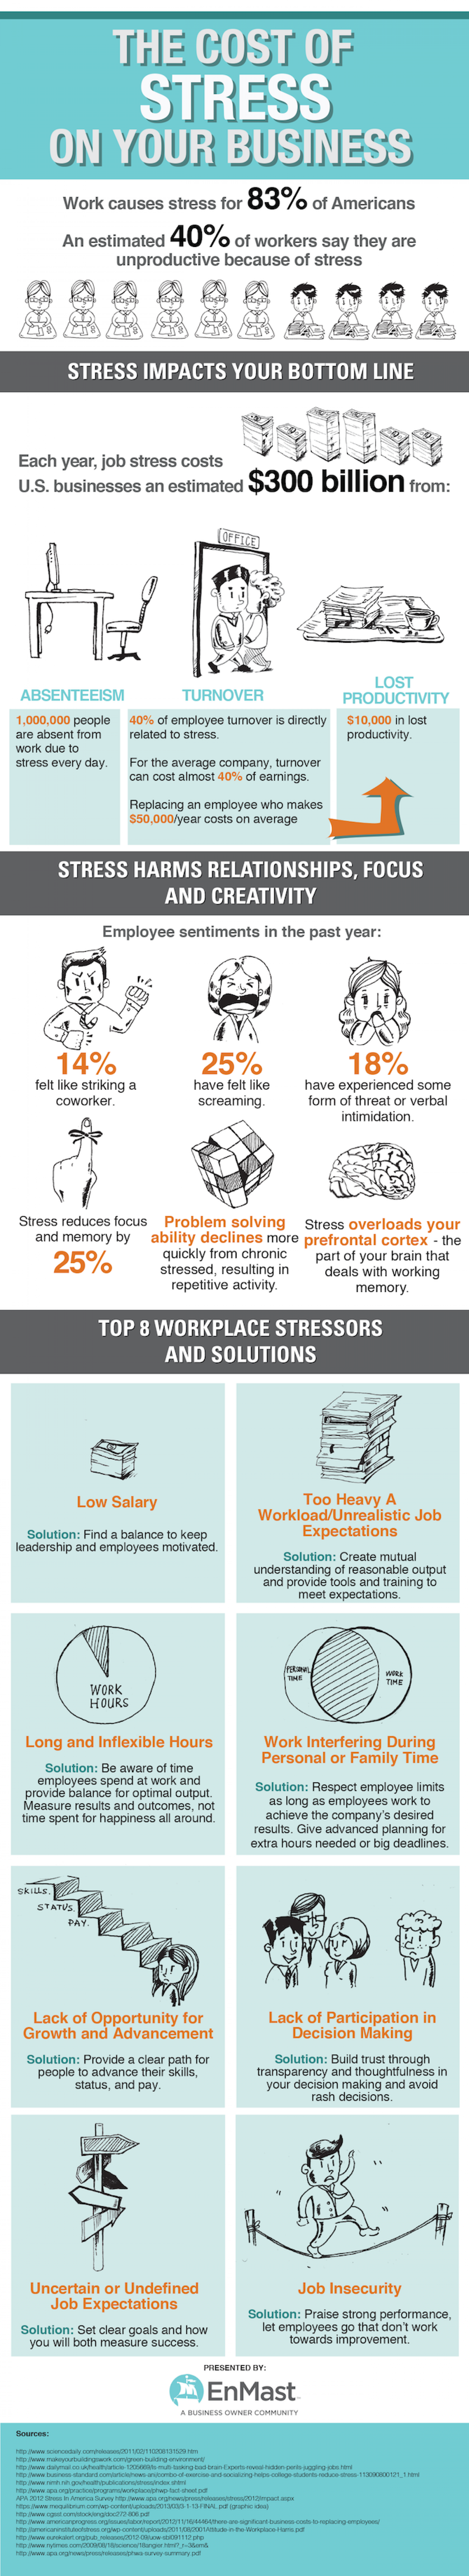 The Cost Of Stress On Your Business Infographic